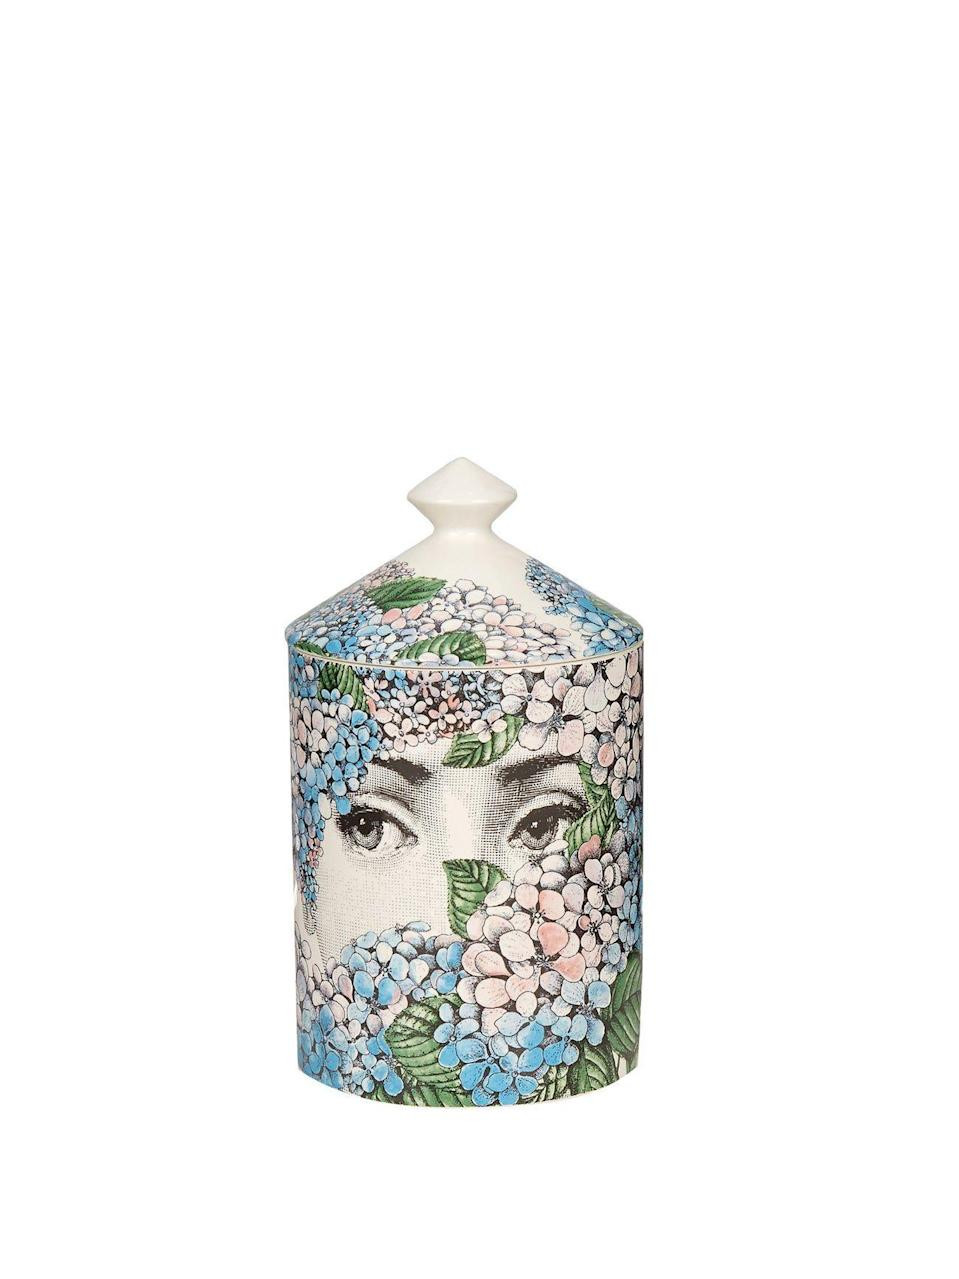 """<p><strong>Fornasetti</strong></p><p><strong>$165.00</strong></p><p><a href=""""https://go.redirectingat.com?id=74968X1596630&url=https%3A%2F%2Fwww.matchesfashion.com%2Fus%2Fproducts%2F1347777%3Fcountry%3DUSA%26rffrid%3Dsem.Google.n%253Dg.cid%253D1775457770.aid%253D71956807867.k%253D.mty%253D.d%253Dc.adp%253D.cr%253D343452211173.tid%253Daud-429262818371%253Apla-605358118702.pid%253D1347777000001.ppid%253D605358118702.lpm%253D9012934.adty%253Dpla.prl%253Den%26gclid%3DCj0KCQiA-aGCBhCwARIsAHDl5x_nFE7azvSF9LnjJlvlTRu8VFM6BPZGot2xxkv6Gi_4HMMjdlolBeMaAi50EALw_wcB%26gclsrc%3Daw.ds&sref=https%3A%2F%2Fwww.harpersbazaar.com%2Fwedding%2Fplanning%2Fg7719%2Funique-wedding-gift-ideas%2F"""" rel=""""nofollow noopener"""" target=""""_blank"""" data-ylk=""""slk:SHOP NOW"""" class=""""link rapid-noclick-resp"""">SHOP NOW</a></p><p>These beautiful options by Italian painter and engraver, Piero Fornasetti, have unique and whimsical designs glazed onto their ceramic vessels. Not only is the candle hand poured with 100% vegetal wax in Italy, but once it's burned away, the jar remains a beautiful decoration for the couple's home.</p>"""